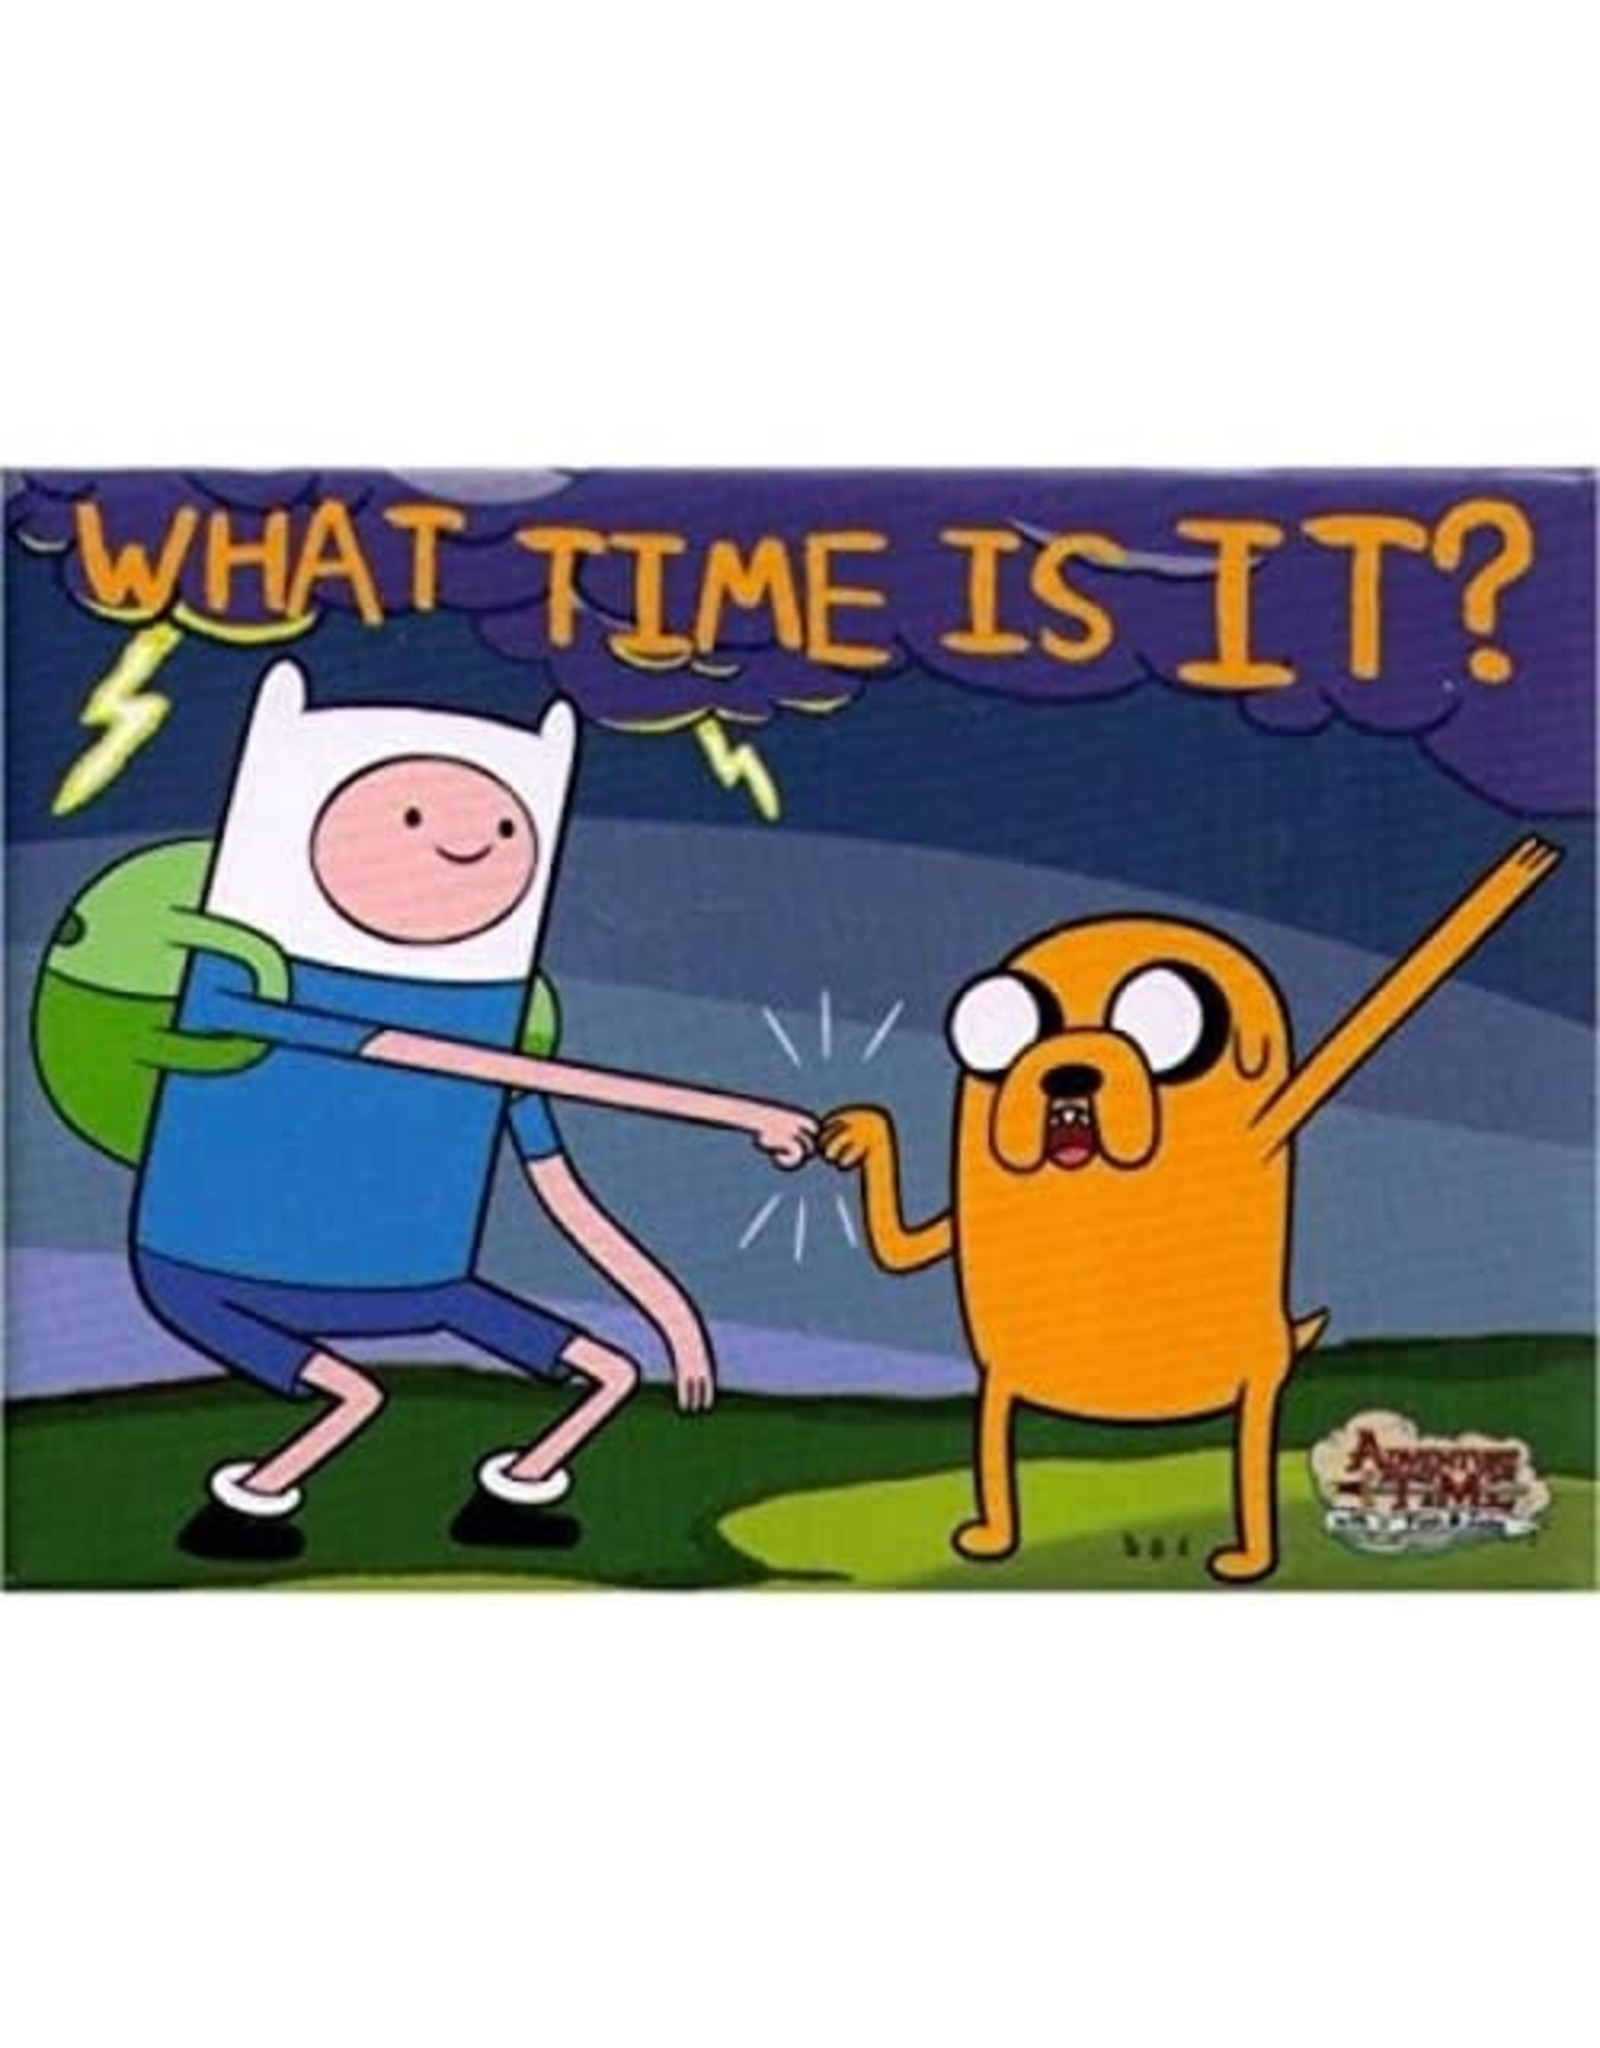 NMR Adventure Time What Time Is It? Flat Magnet